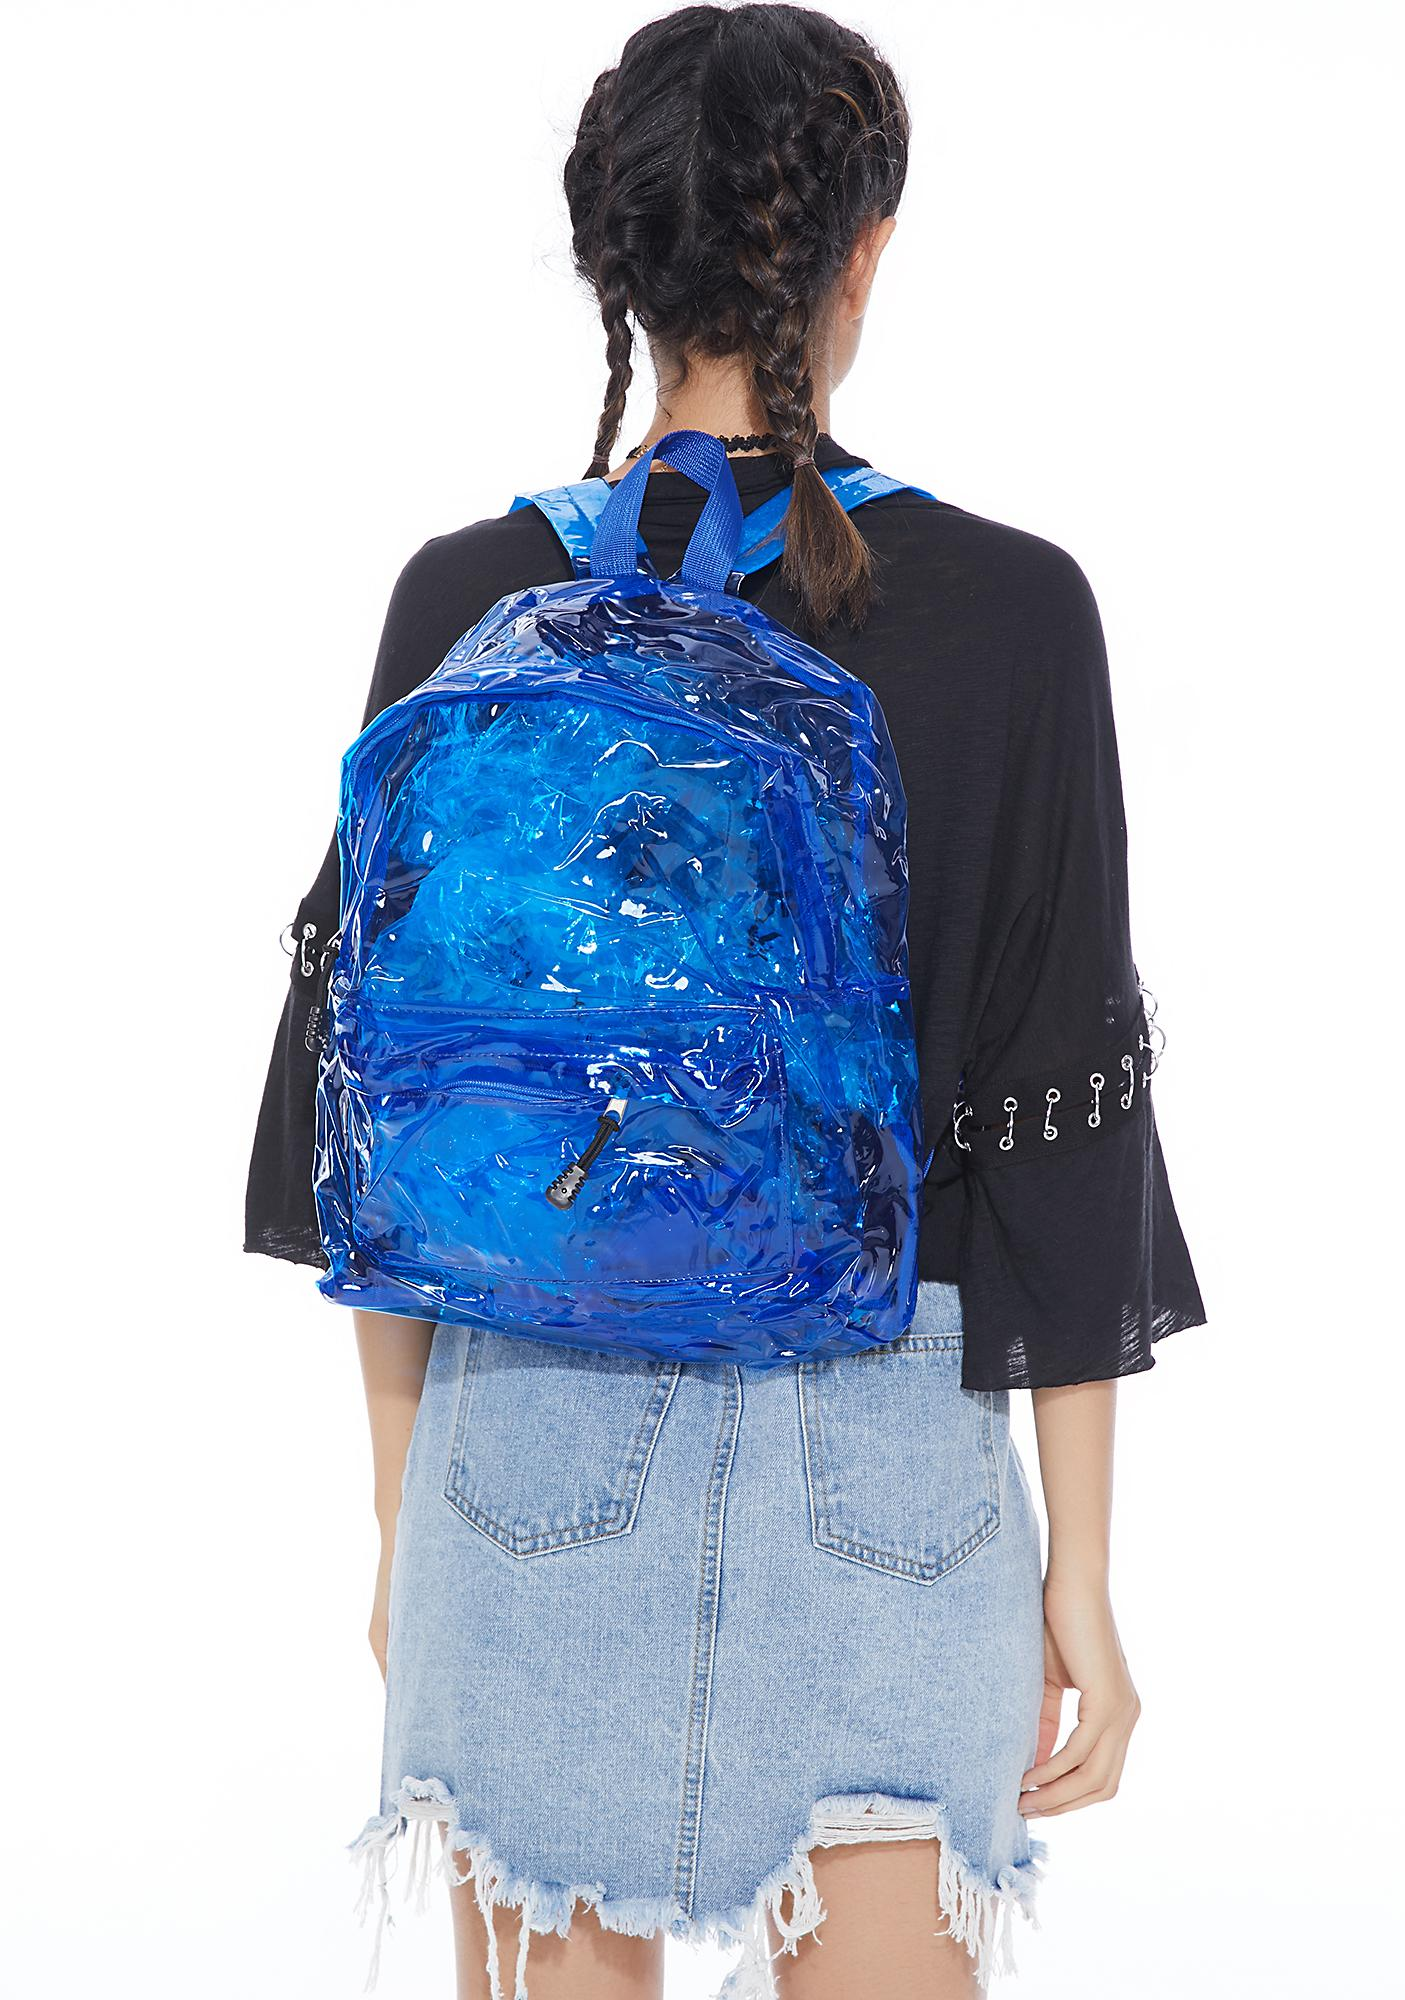 Clear As Day Backpack